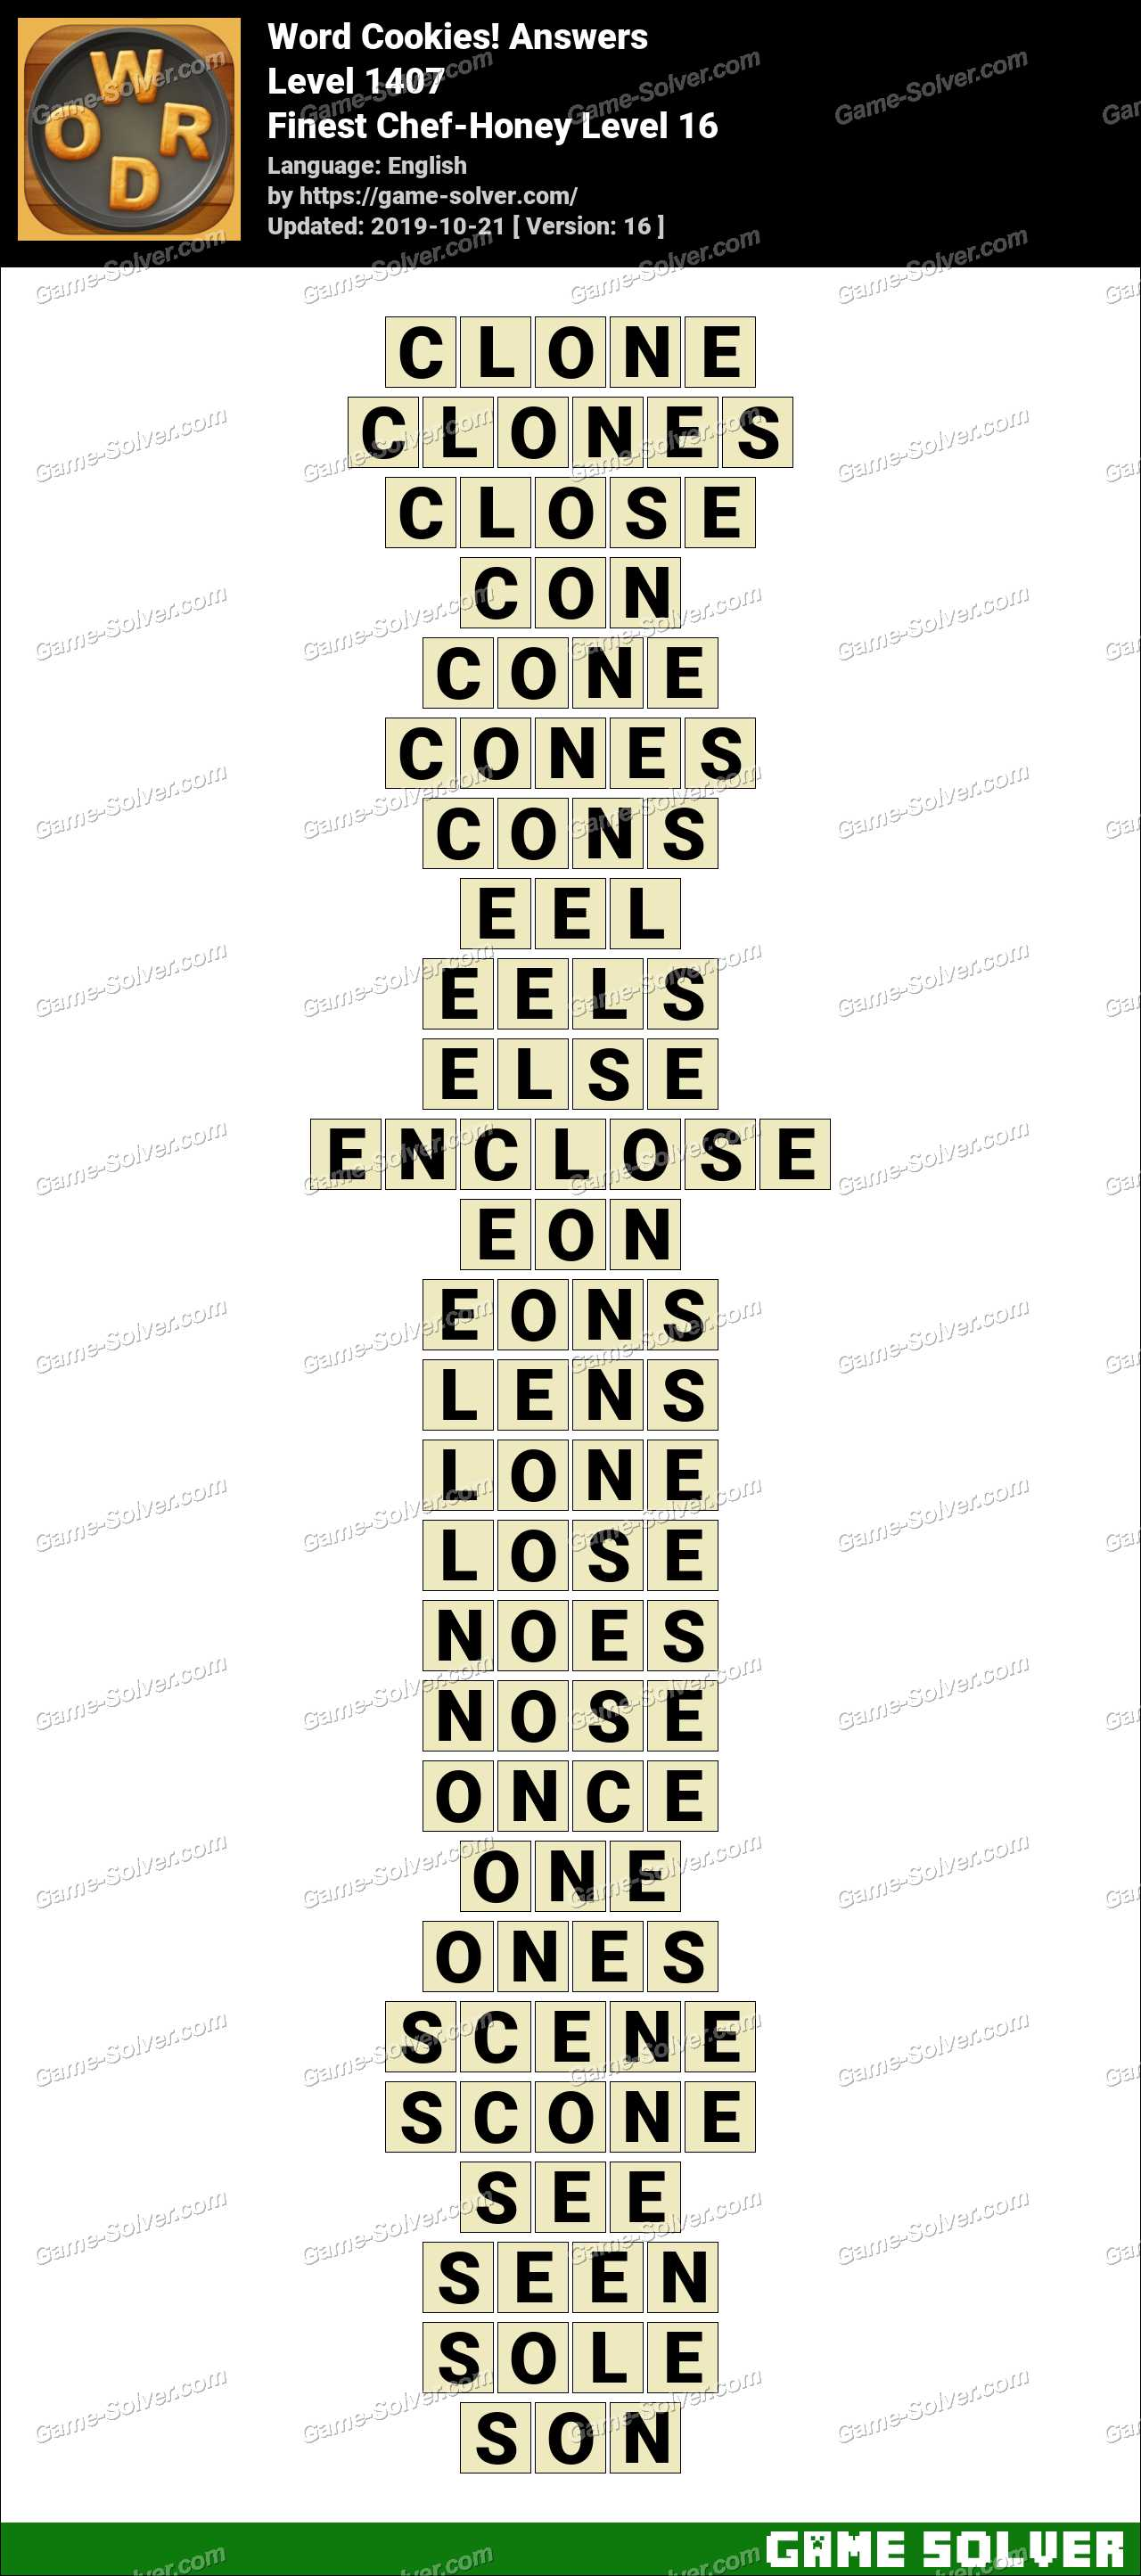 Word Cookies Finest Chef-Honey Level 16 Answers